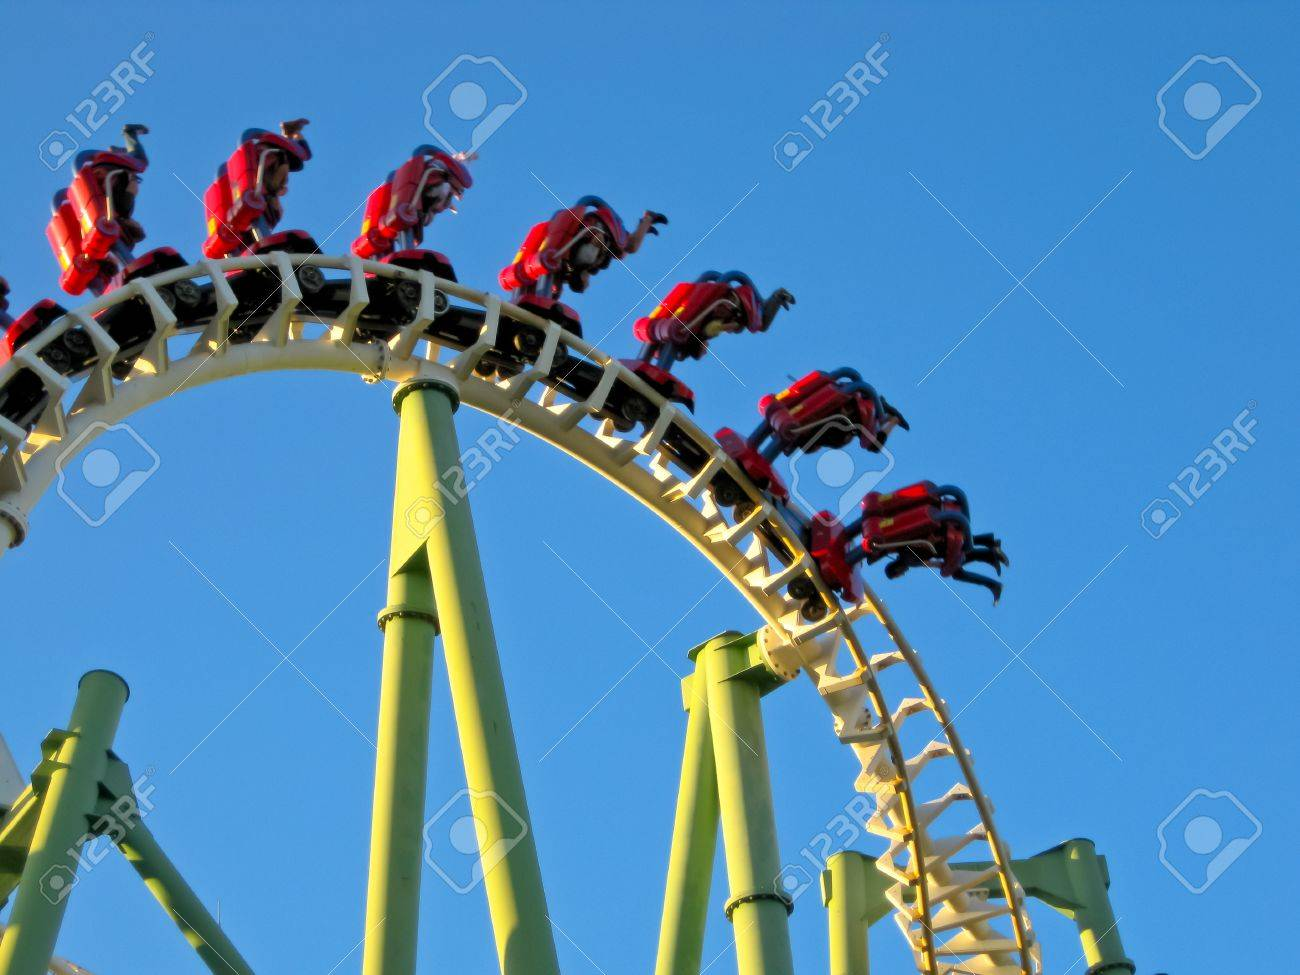 A Roller Coaster in Amusement Park Stock Photo - 12818330